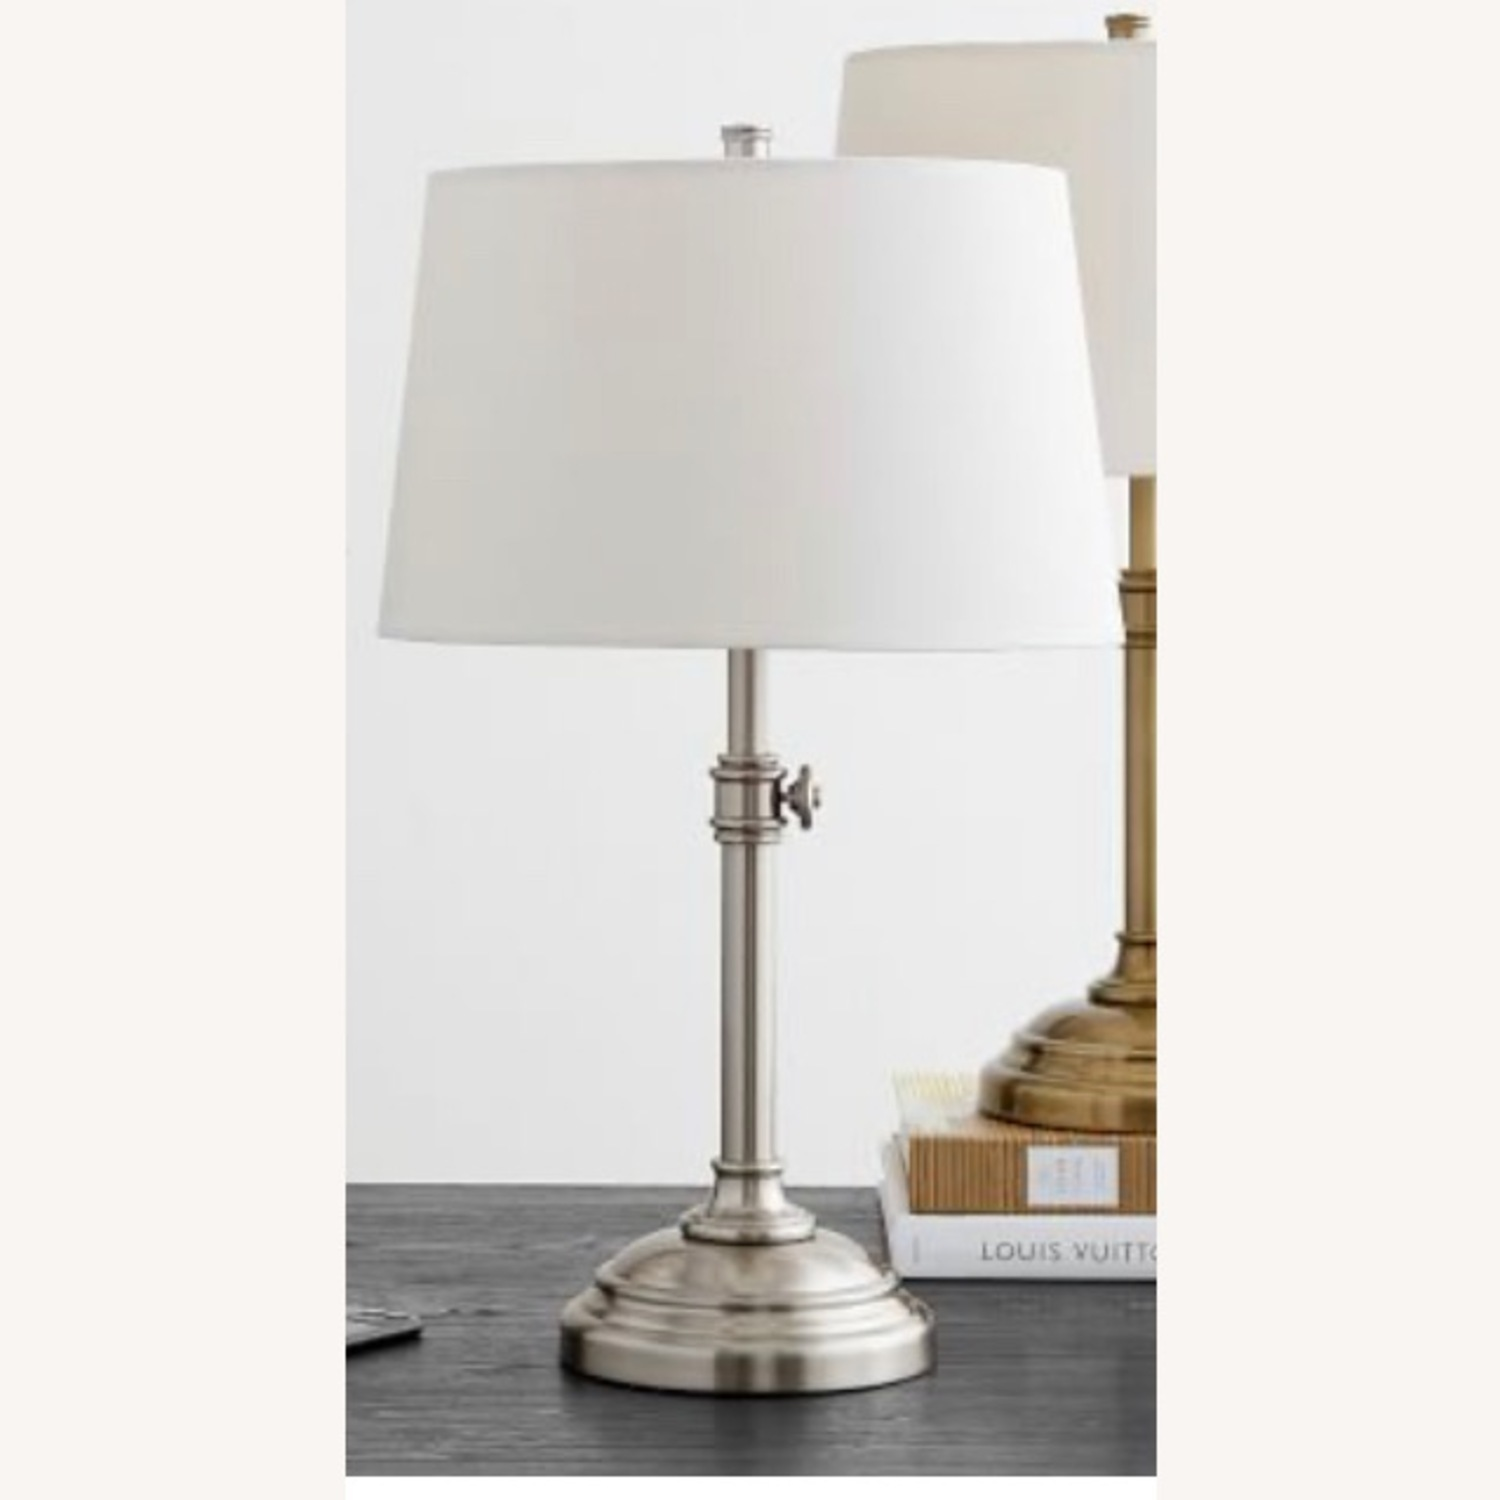 Pottery Barn Chelsea Table Lamps 25 Nickel - image-3